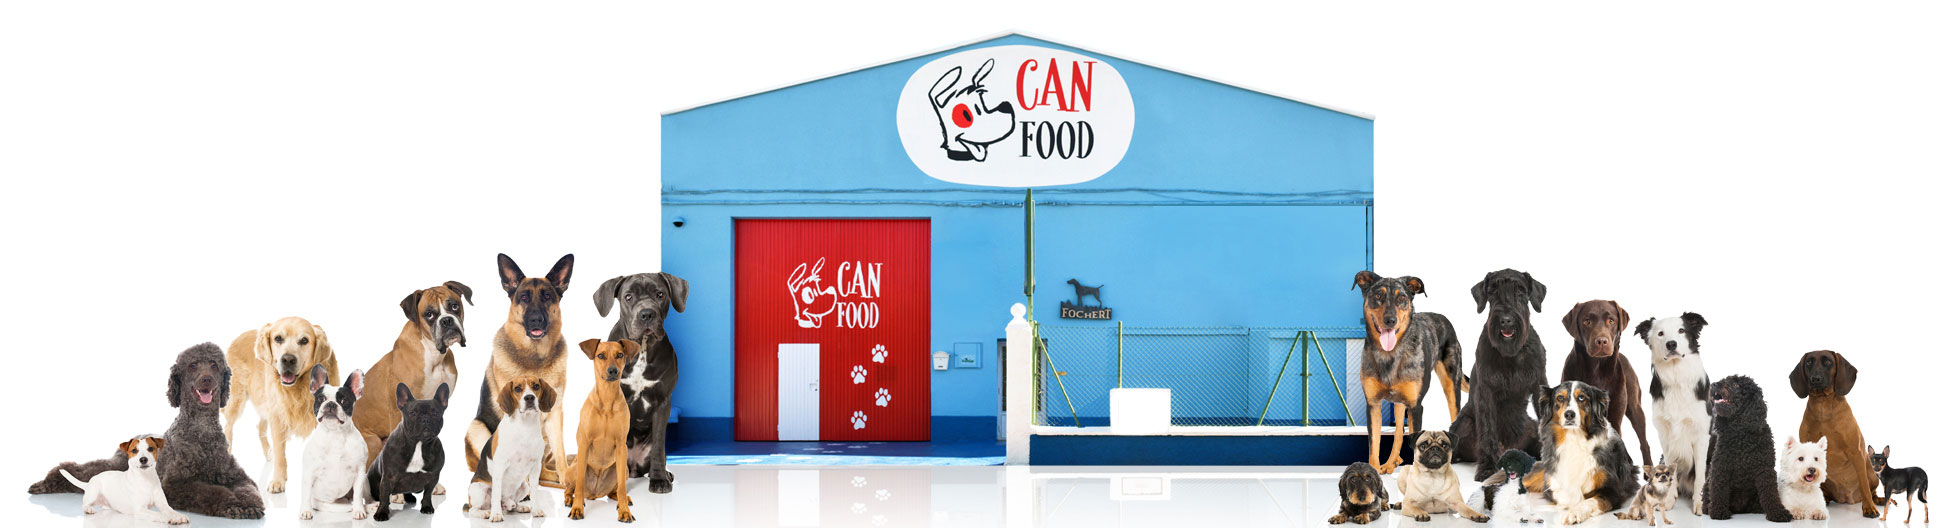 Canfood